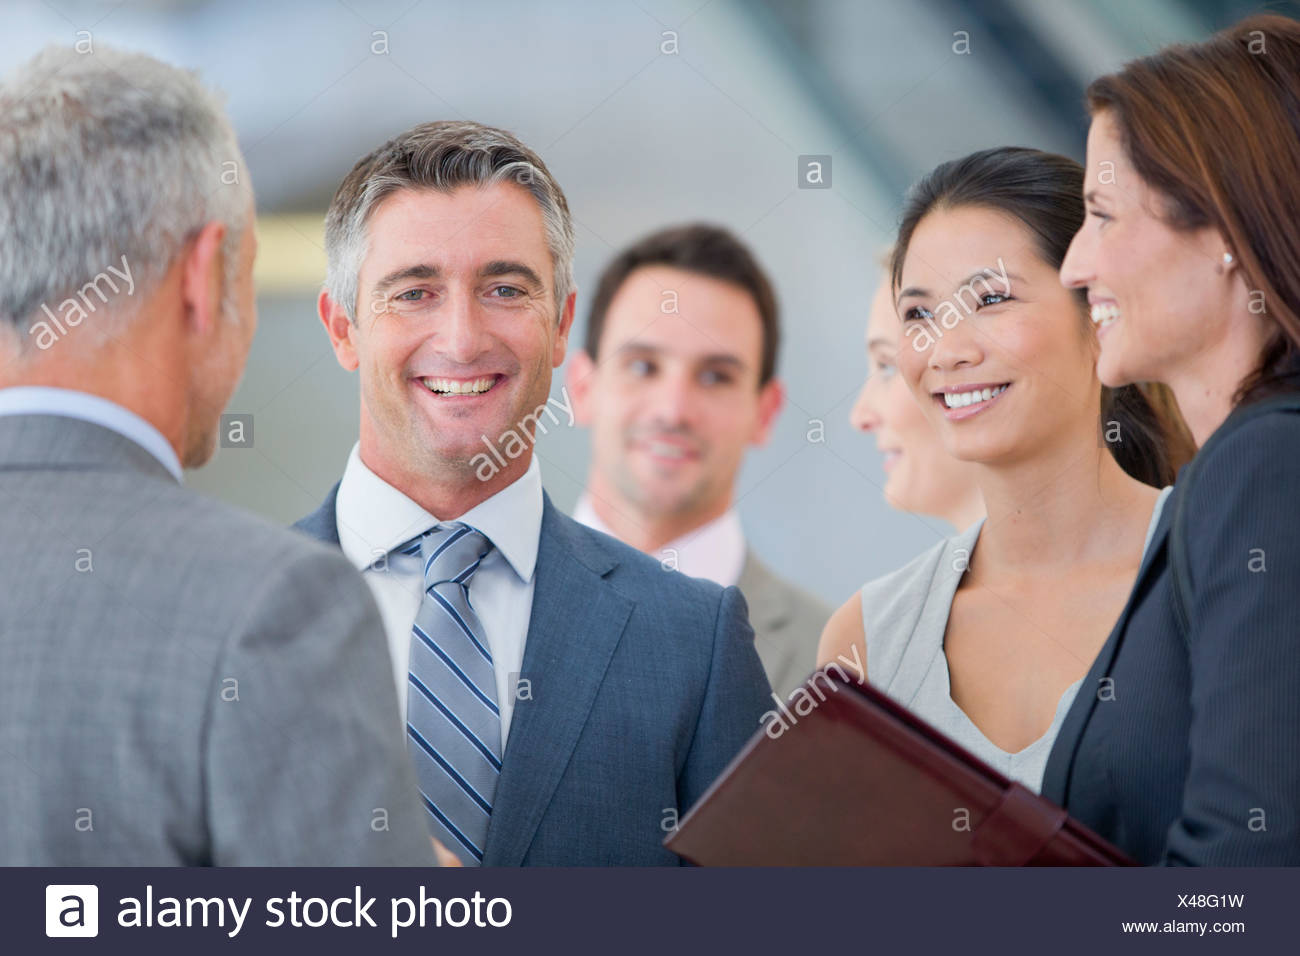 Portrait of smiling businessman among co-workers Stock Photo